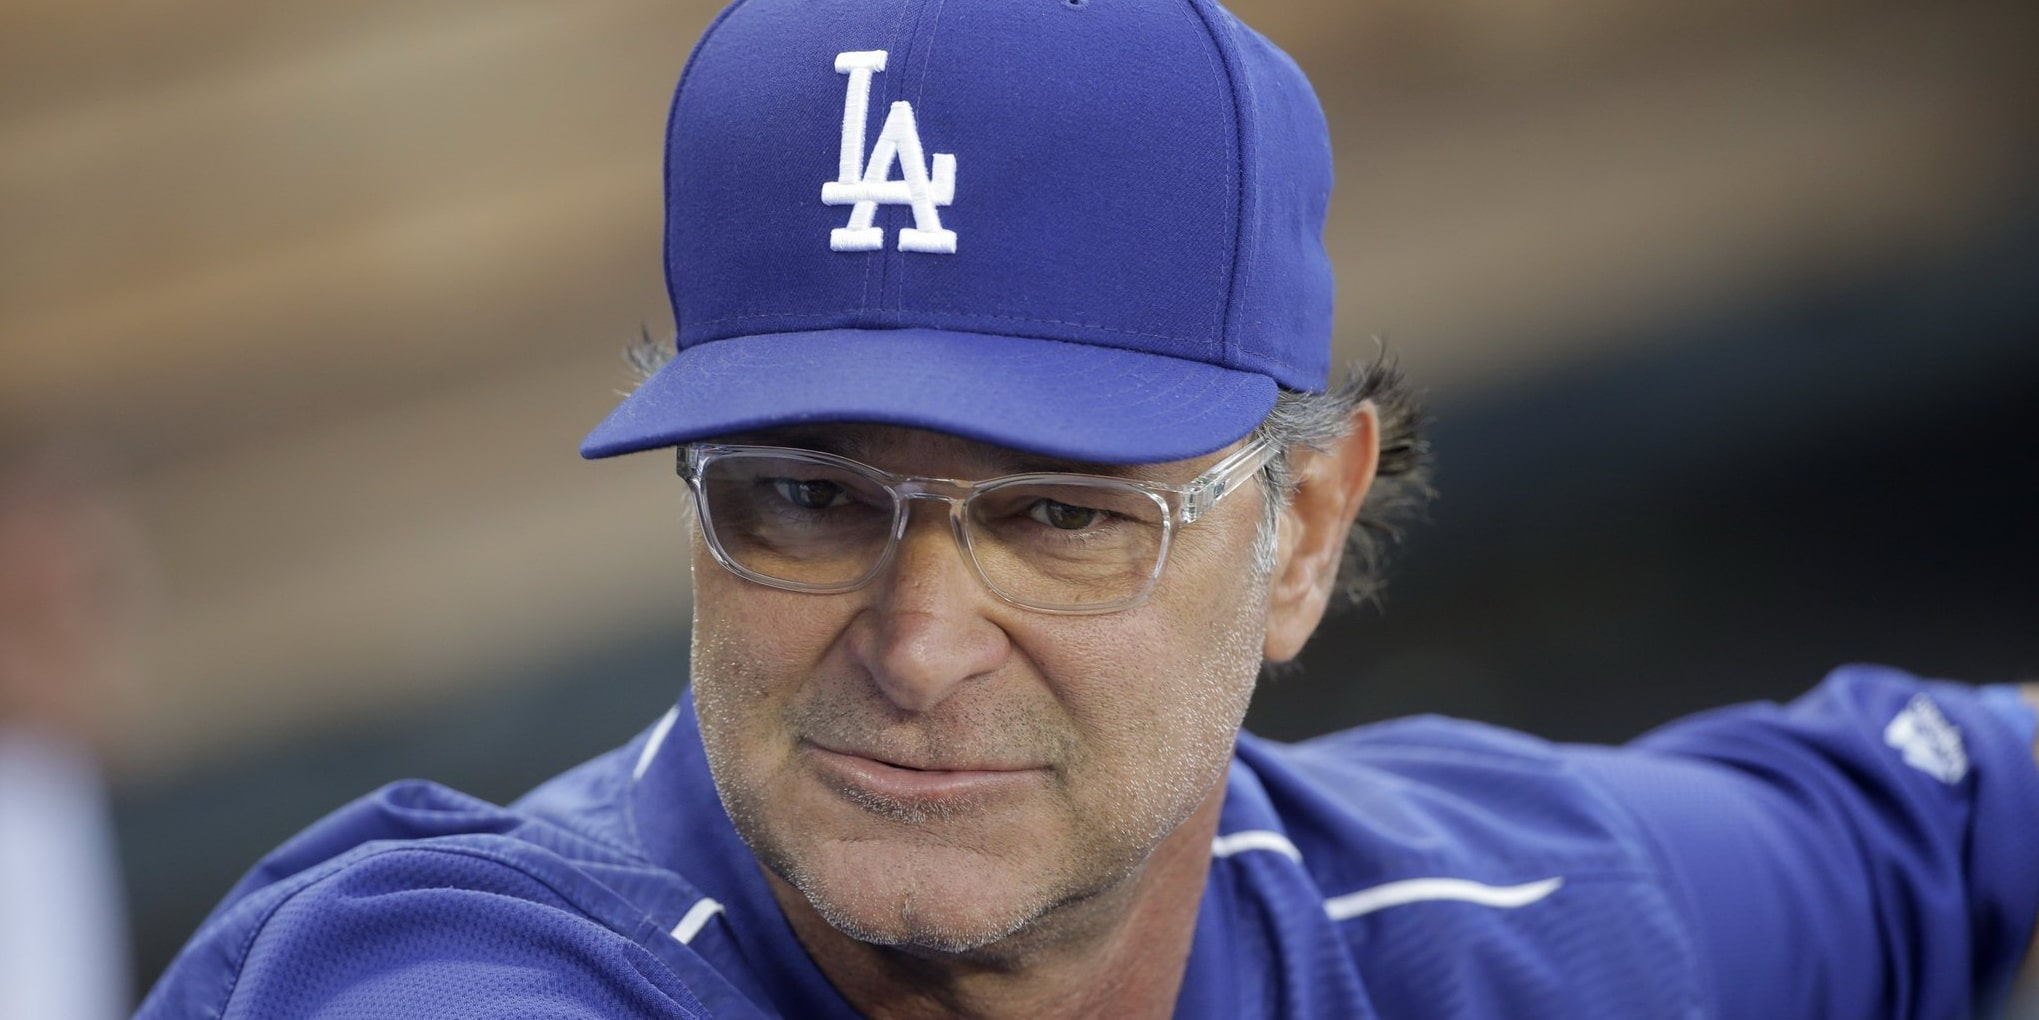 Don Mattingly Net Worth 2018: Wiki, Married, Family, Wedding